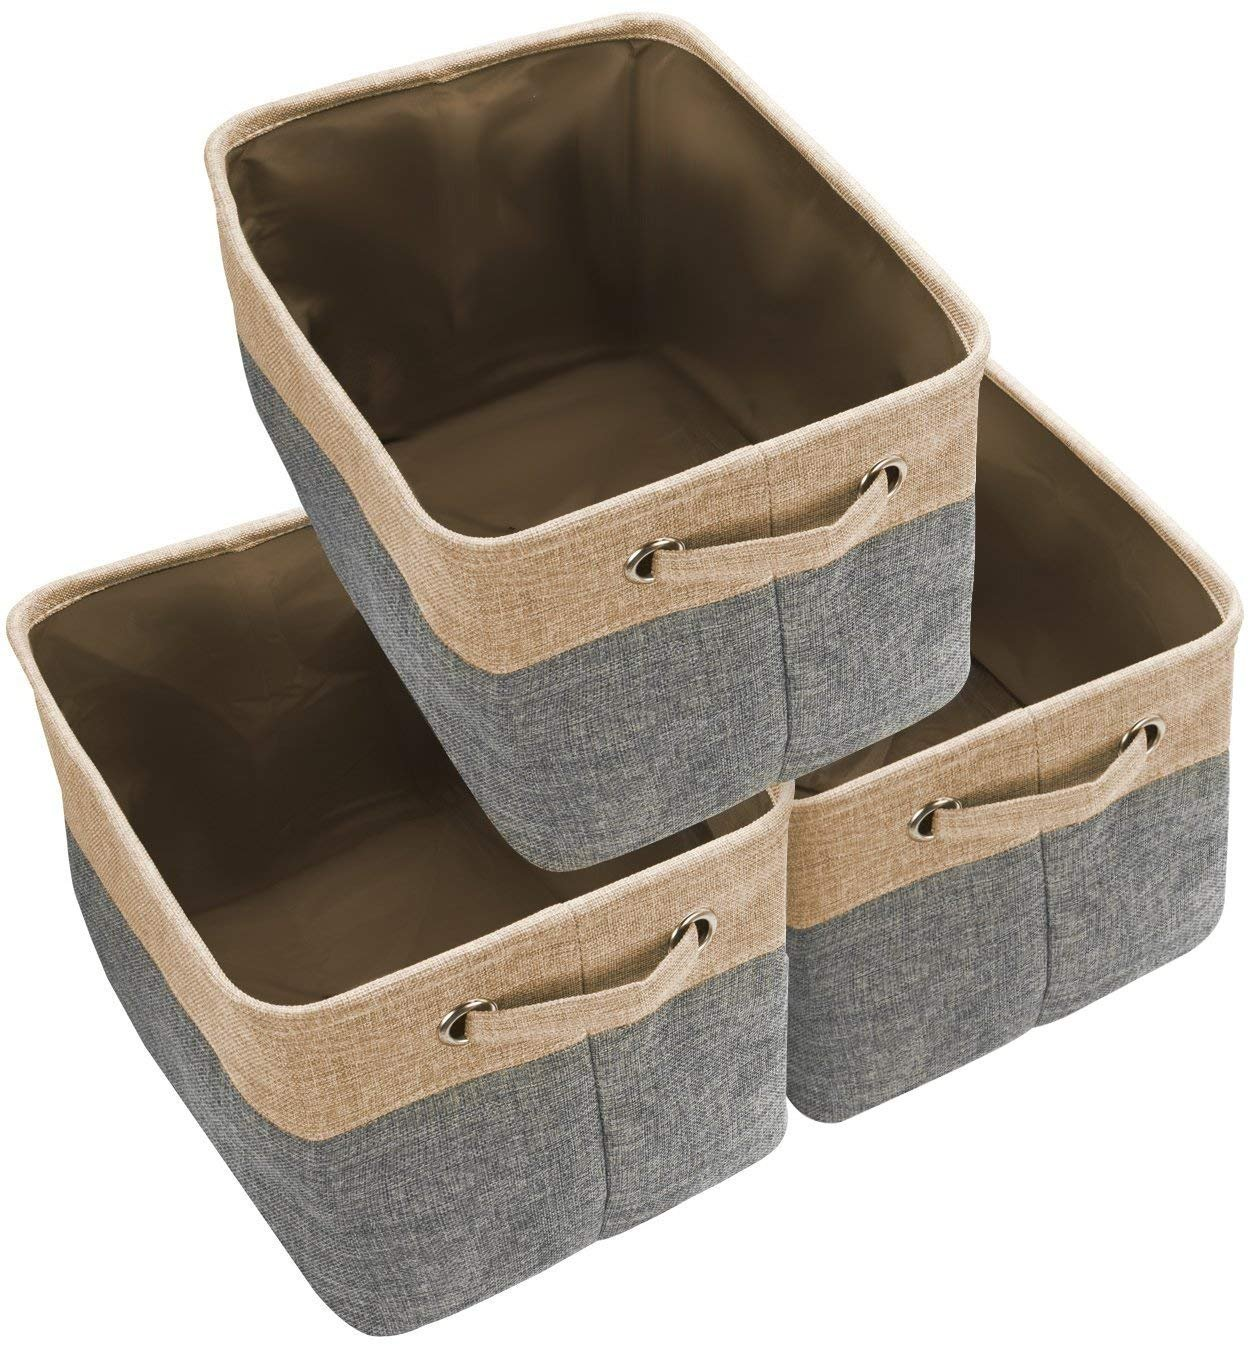 Awekris Large Storage Basket Bin Set [3-Pack] Storage Cube Box Foldable Canvas Fabric Collapsible Organizer with Handles for Home Office Closet, Grey/Tan (Grey)